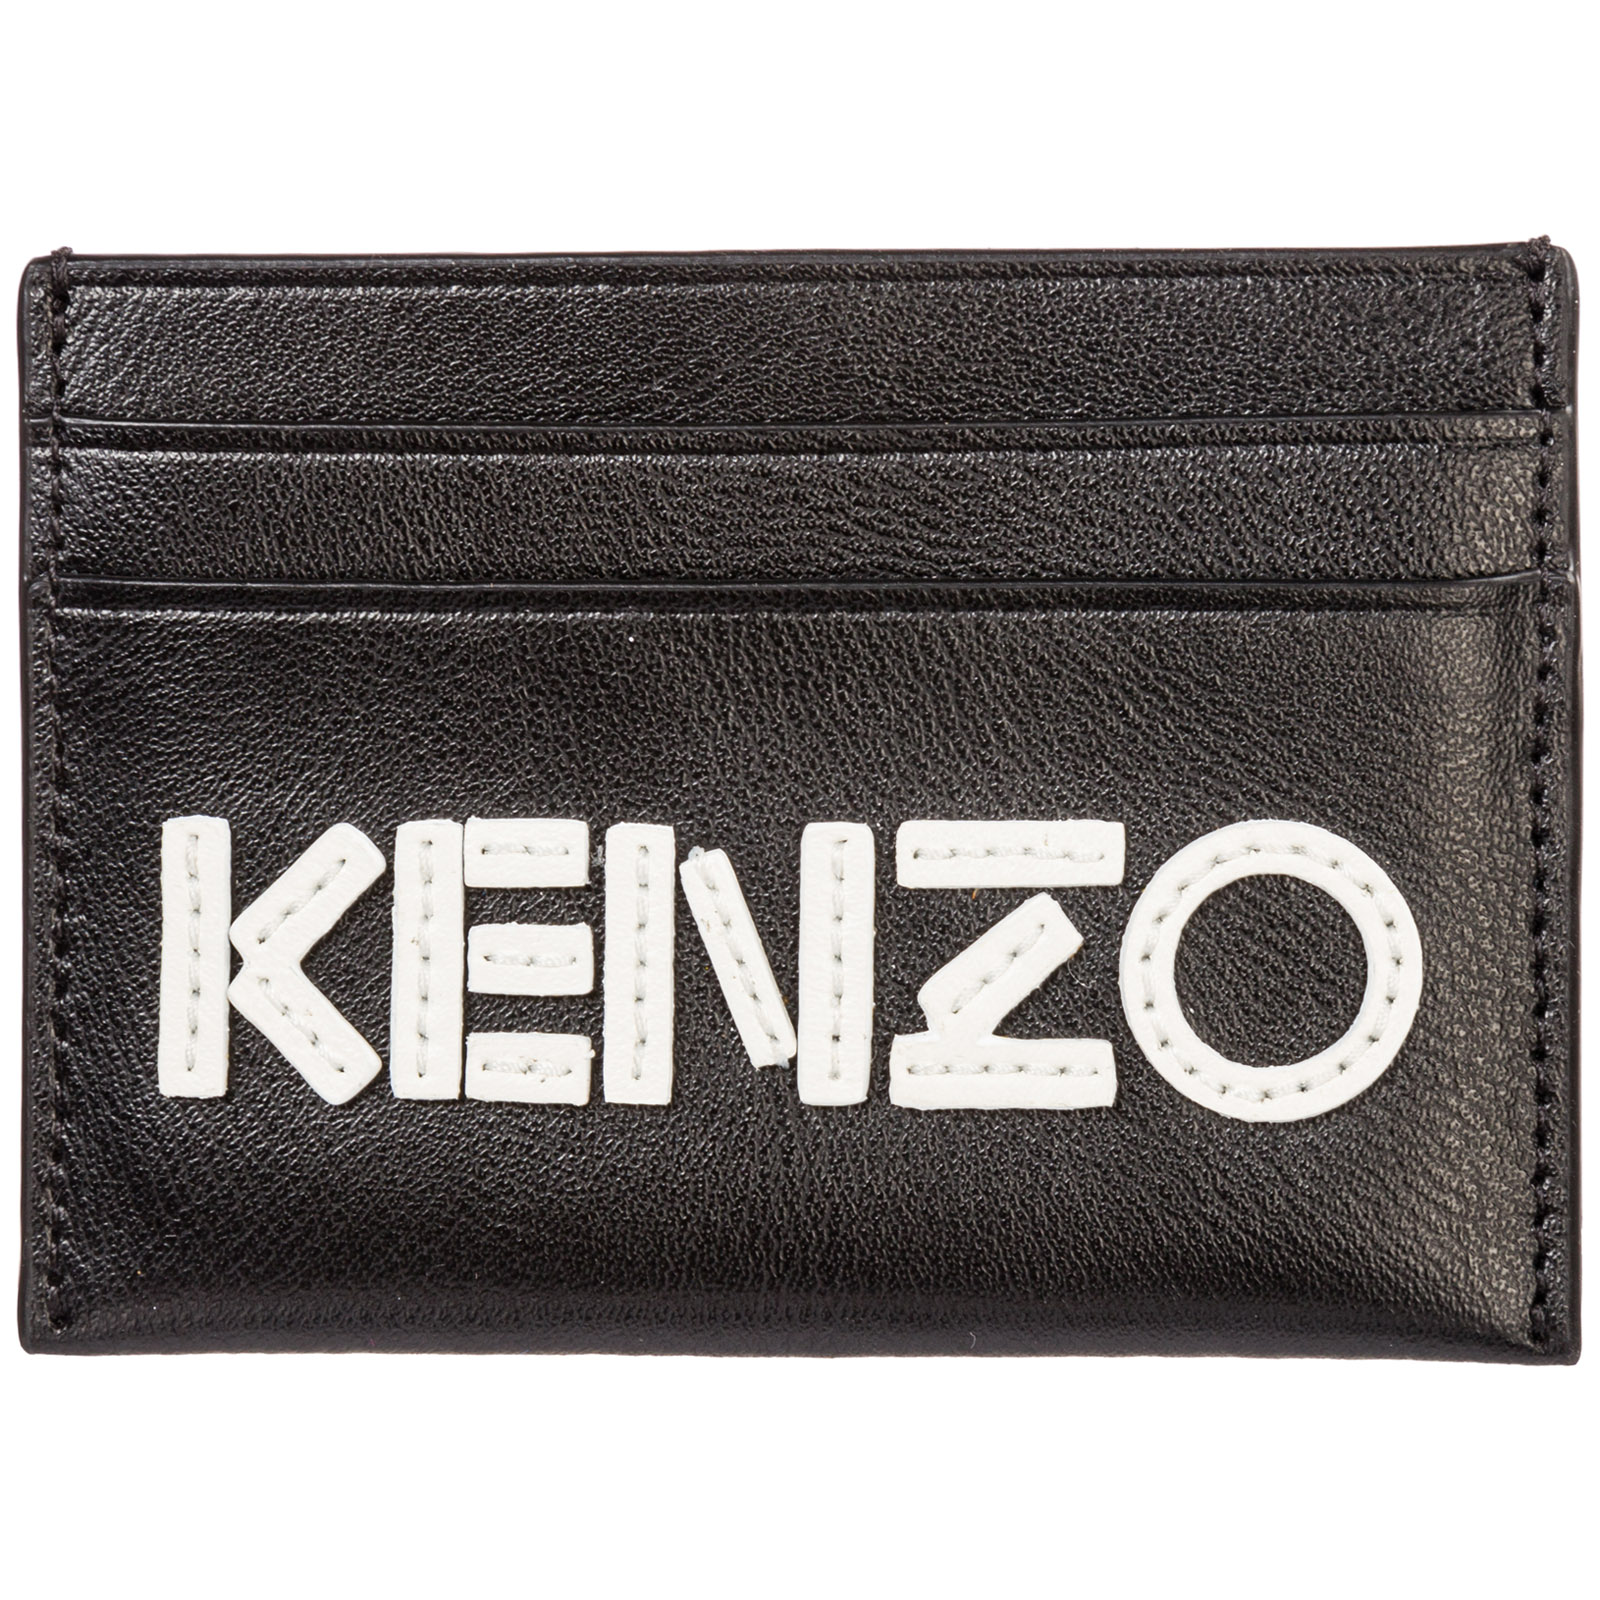 Kenzo Women's Genuine Leather Credit Card Case Holder Wallet In Black